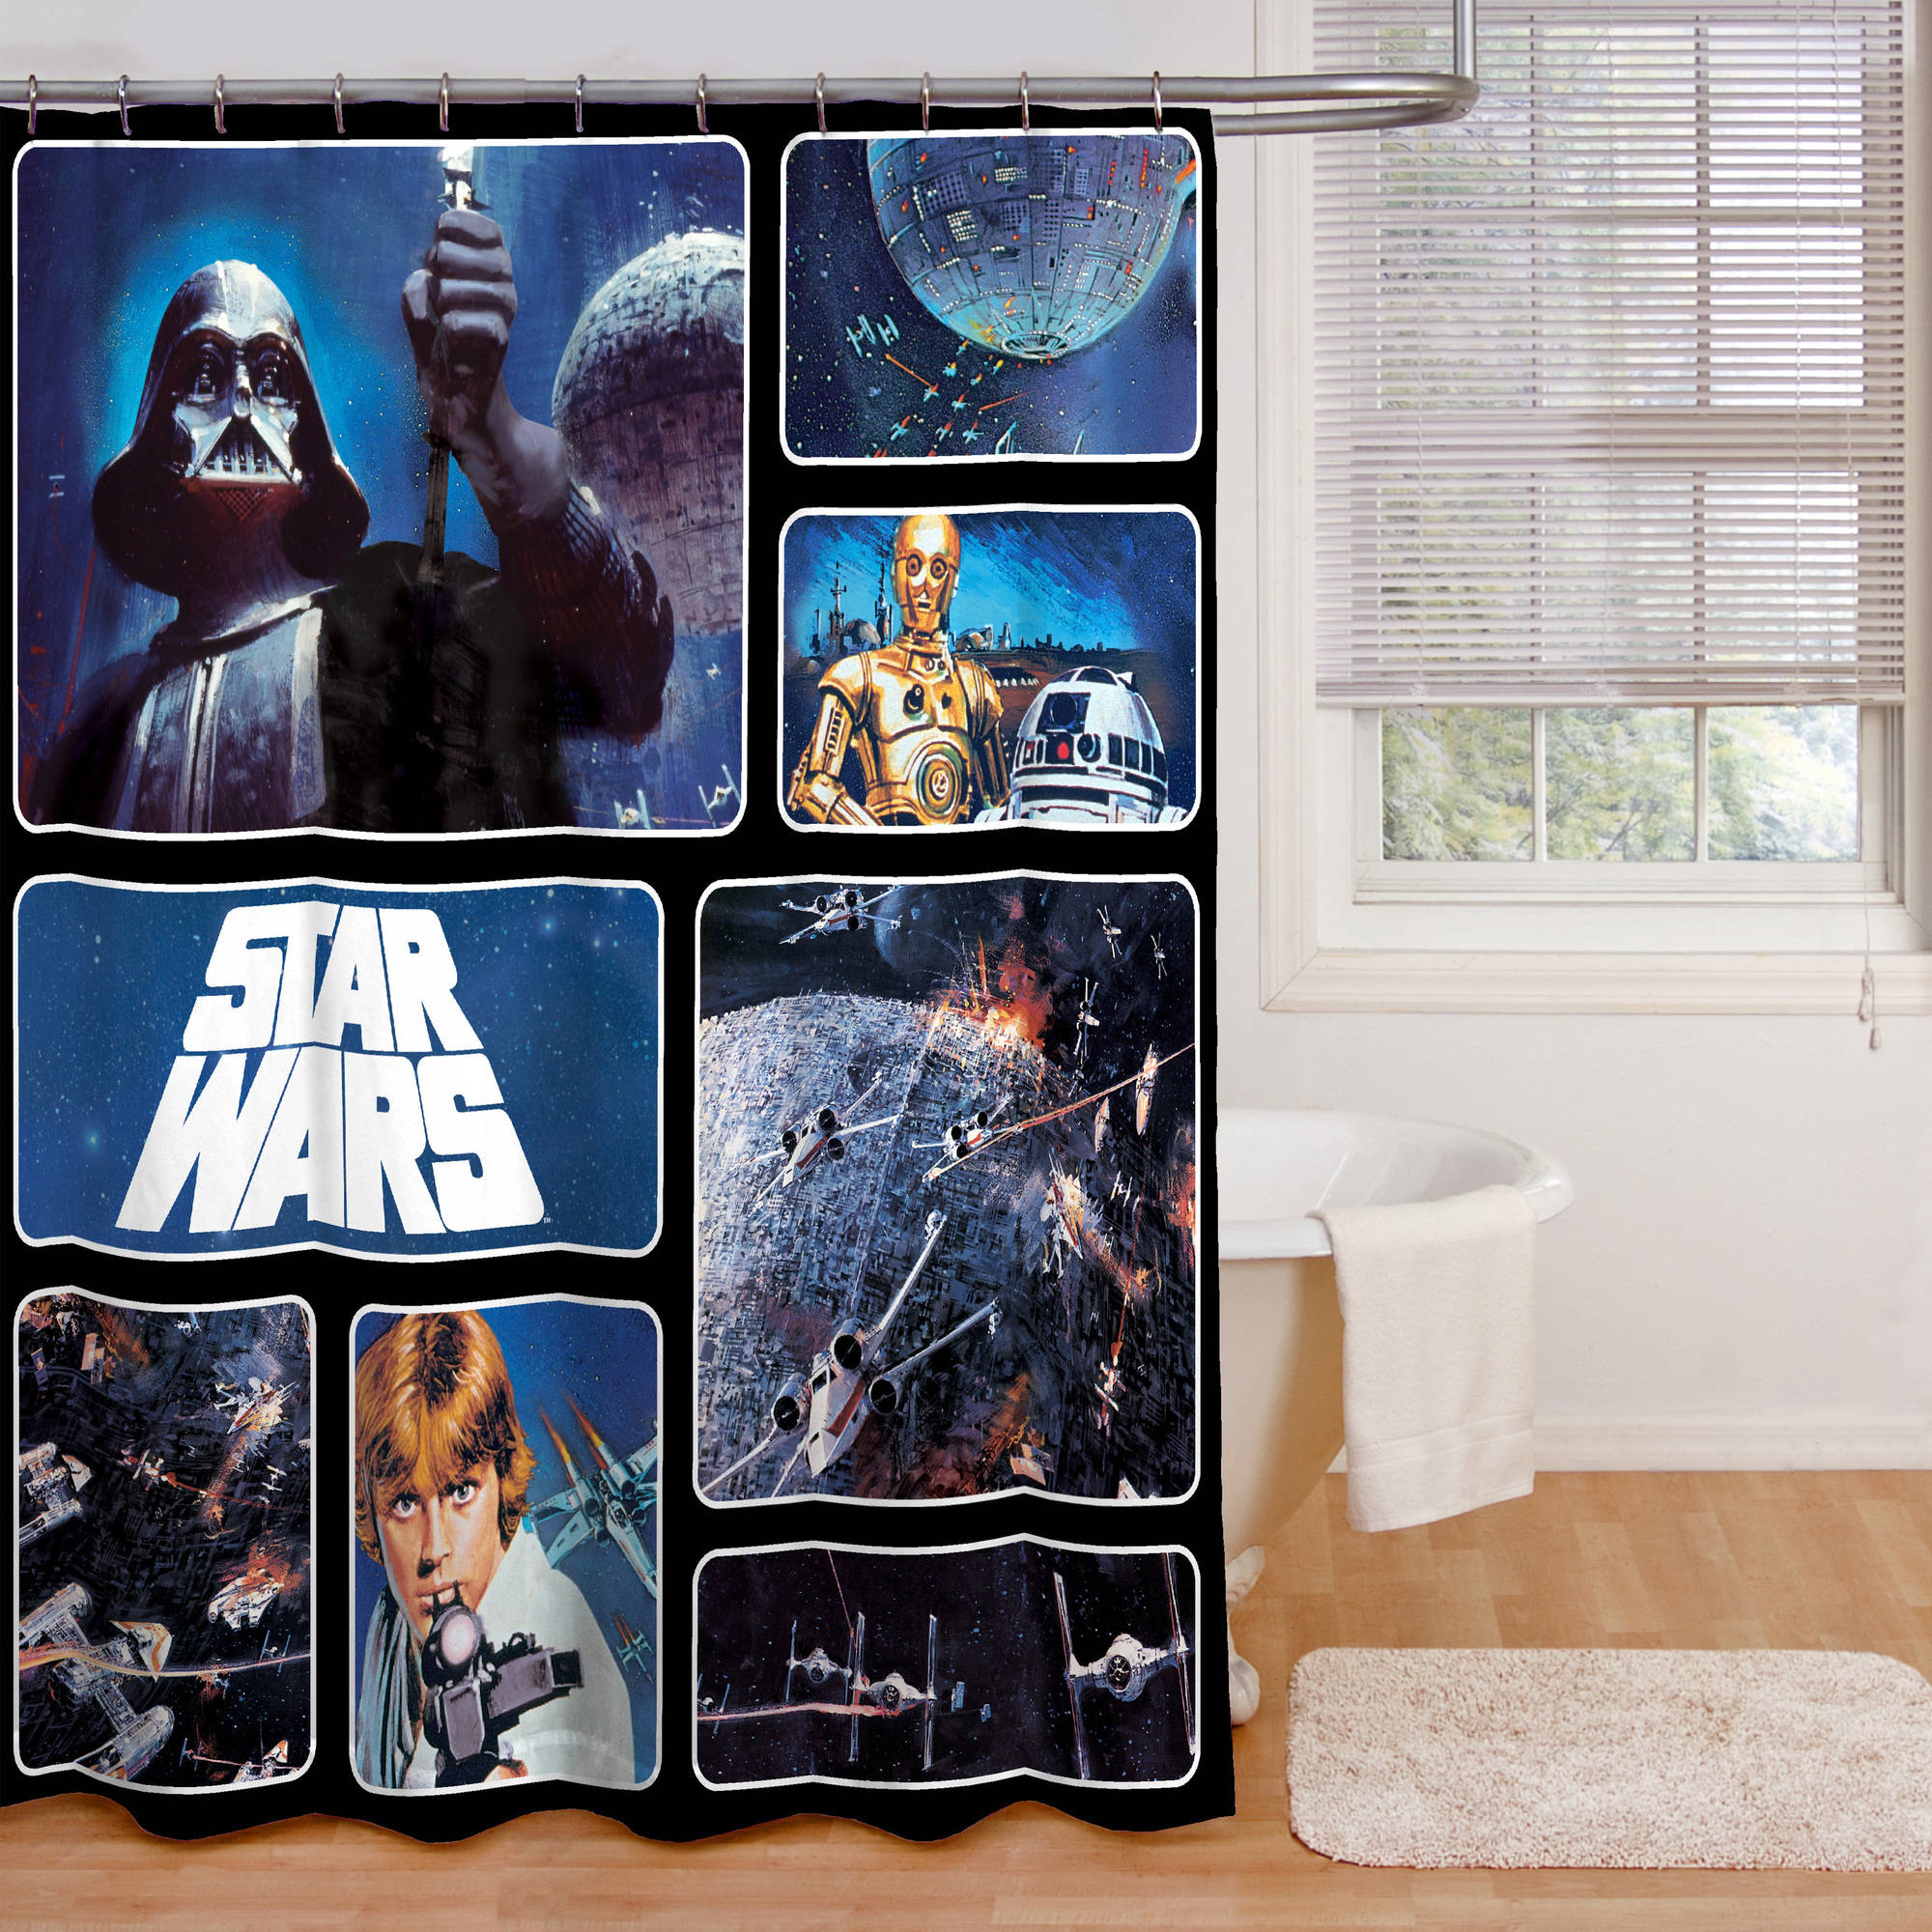 Star Wars Fabric Shower Curtain 1 Each